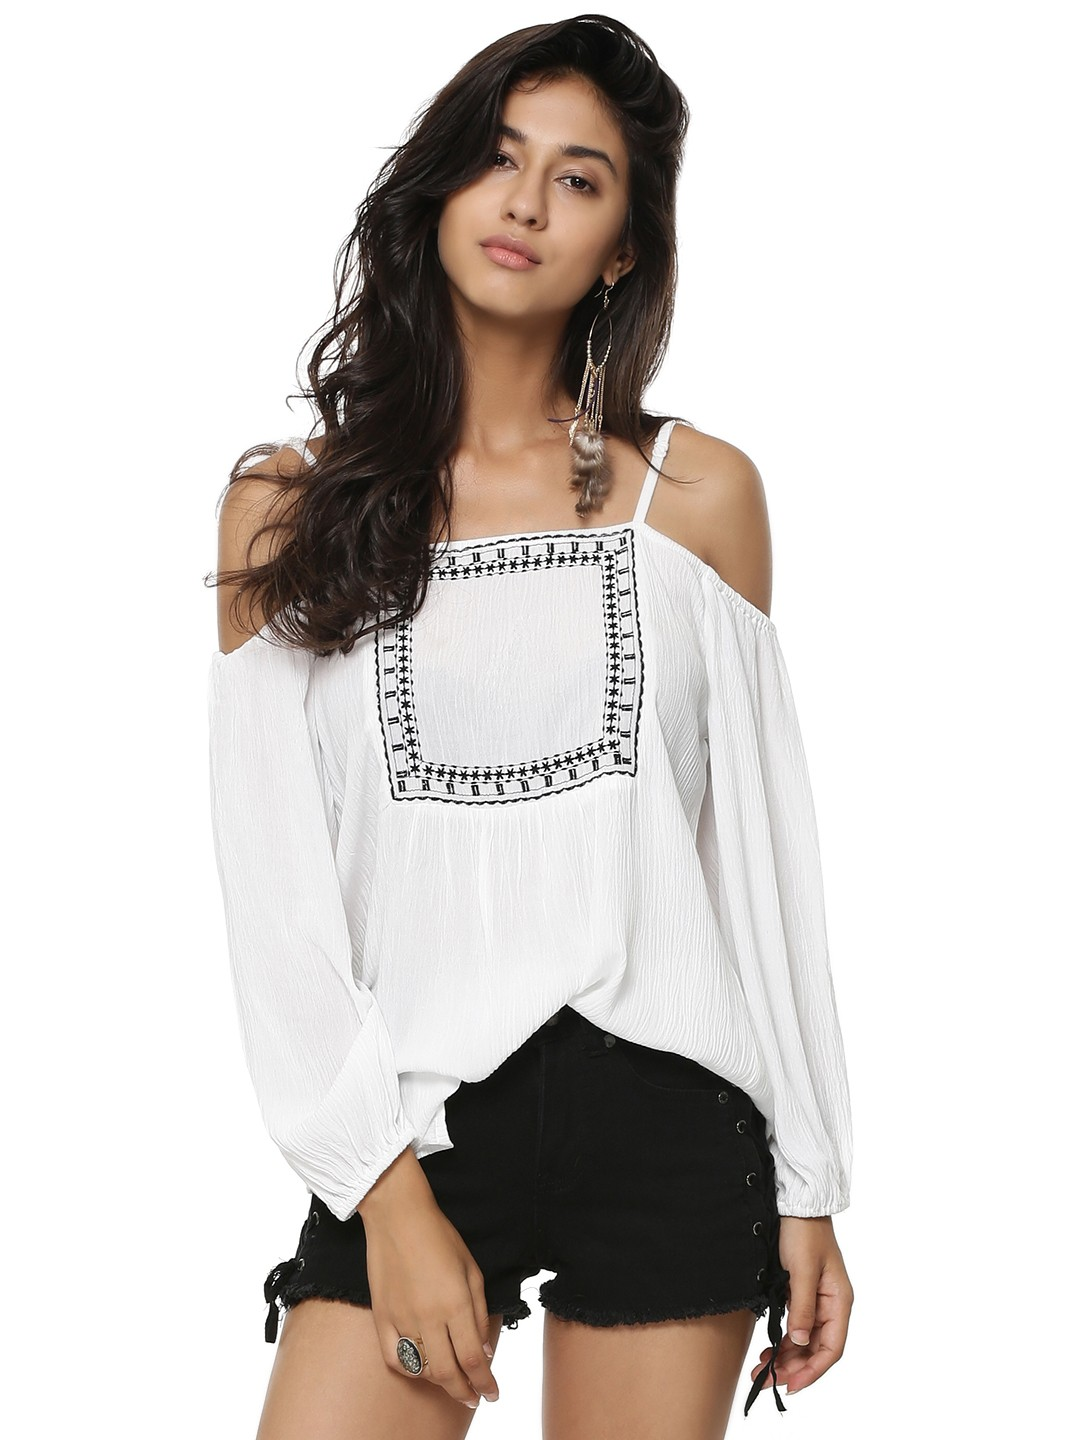 Buy Rena Love Floral Print Peplum Top For Women: Buy Rena Love White Square Embroidered Cold Shoulder Top